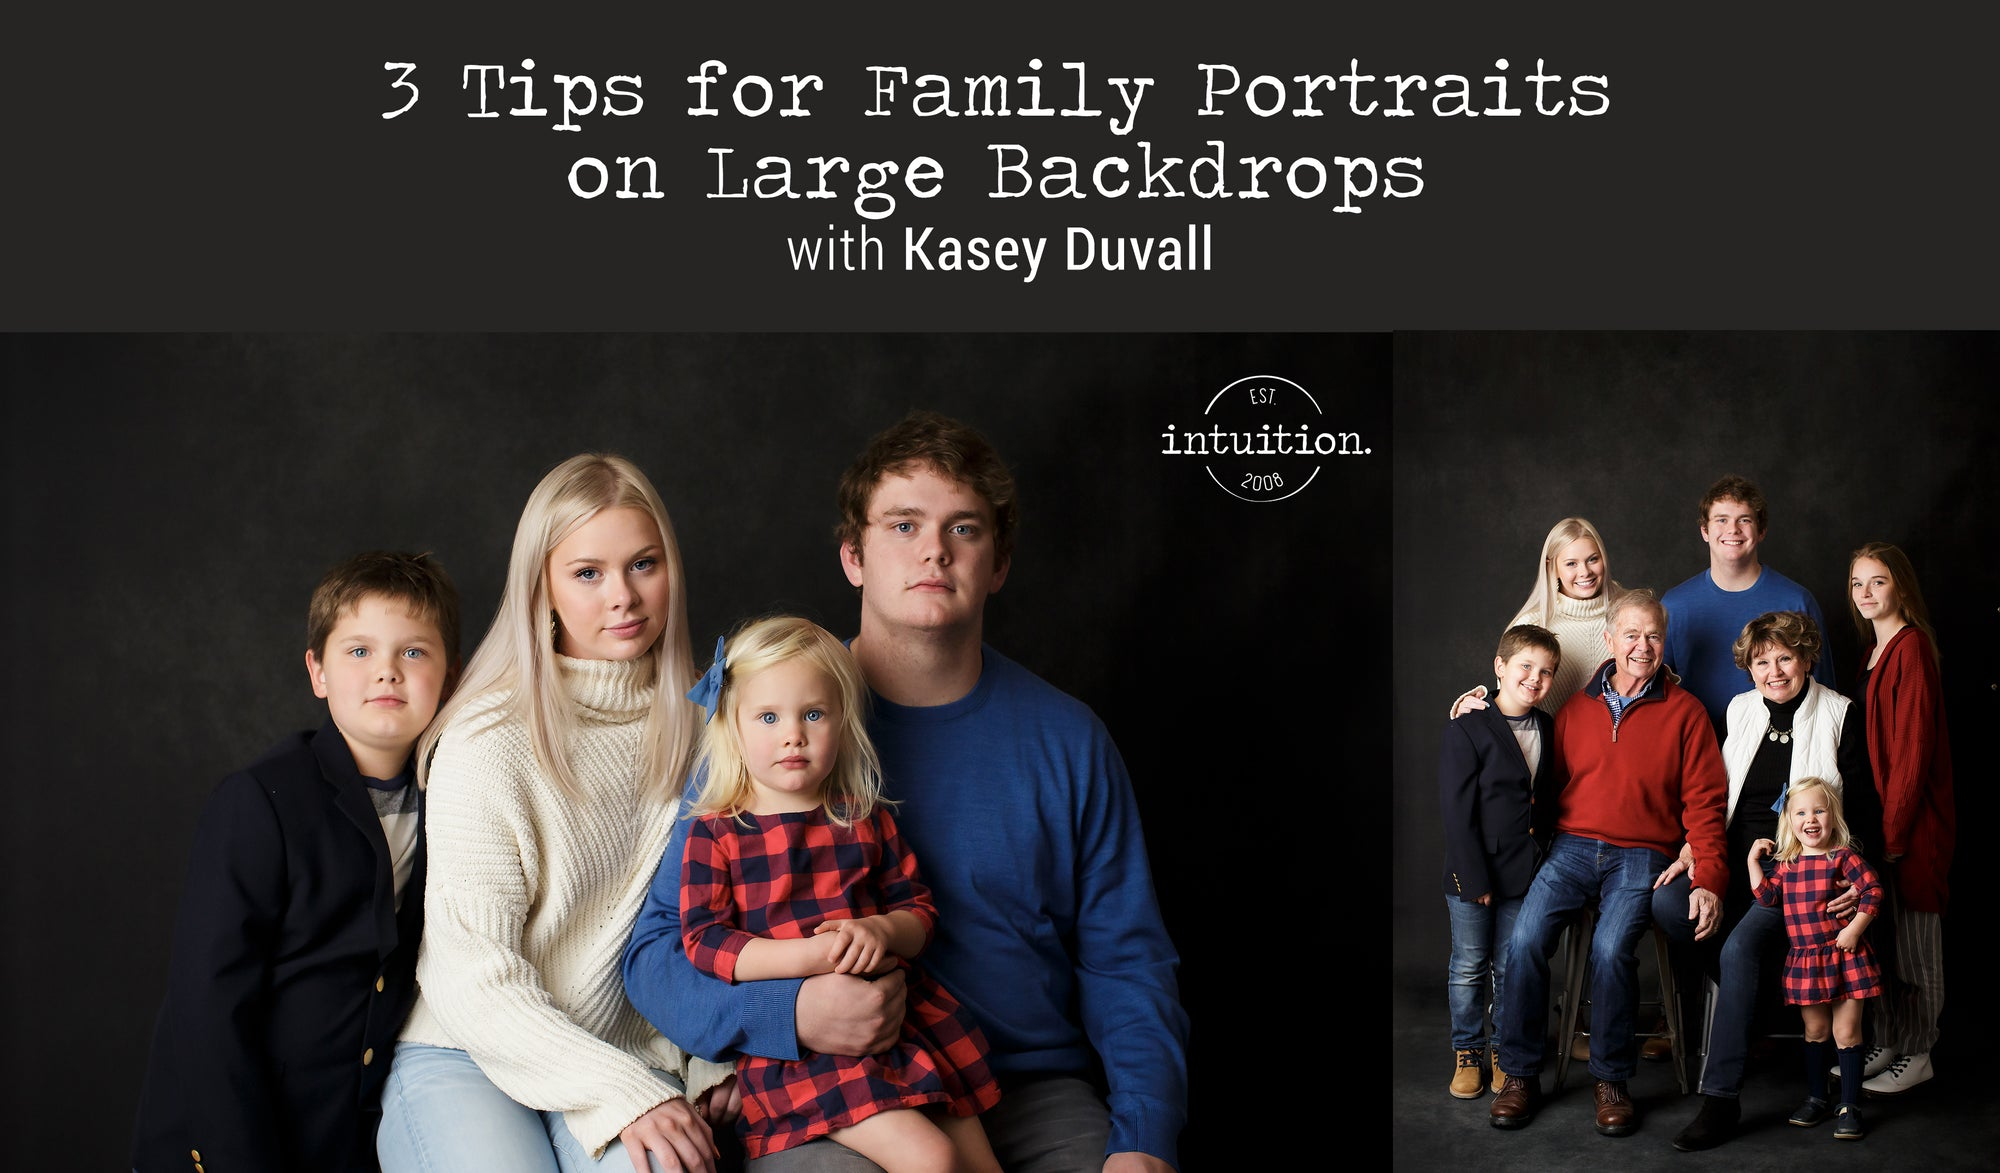 3 Tips for Family Portraits on Large Backdrops with Kasey Duvall